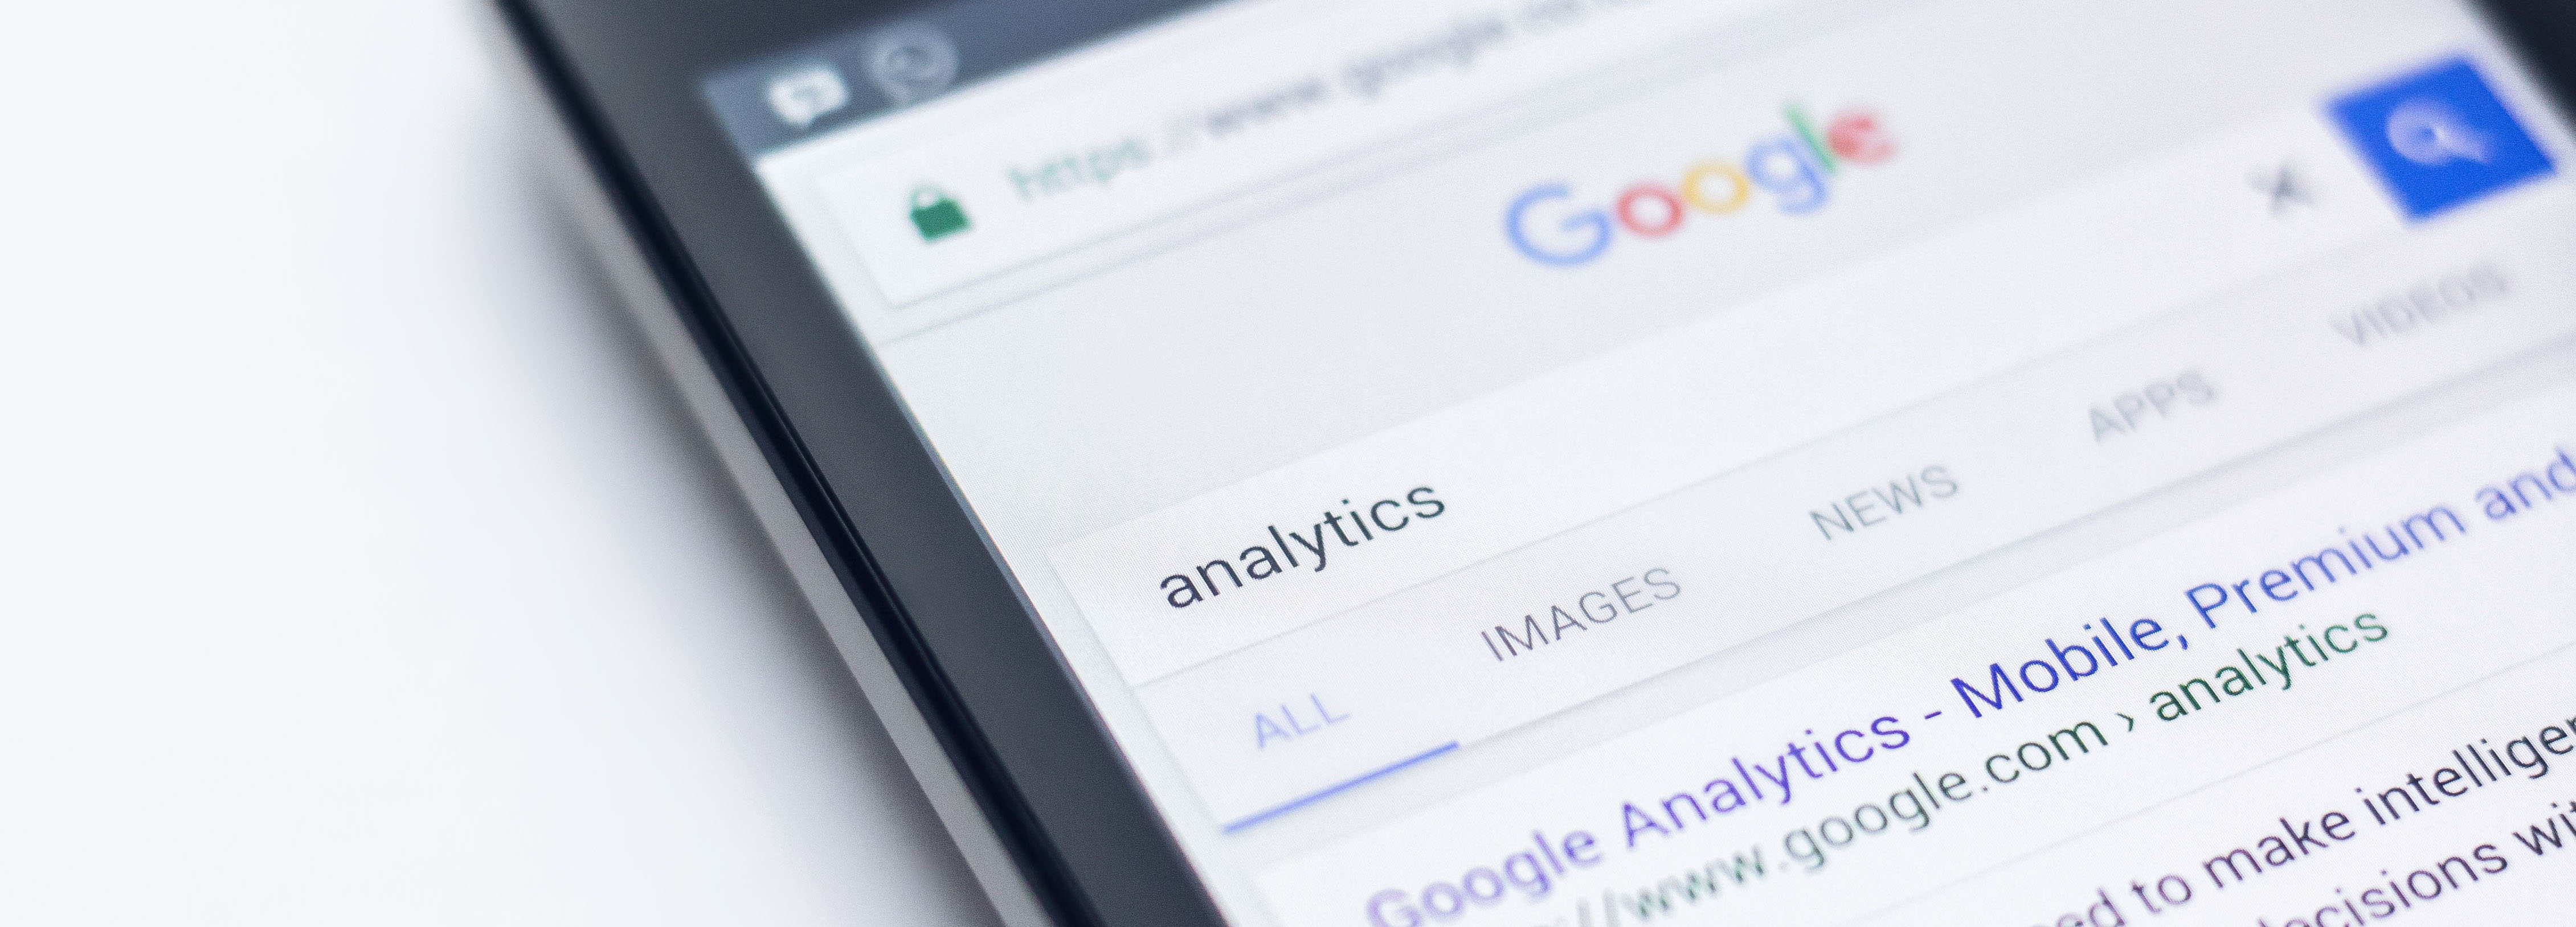 Searching for analytics on Google mobile